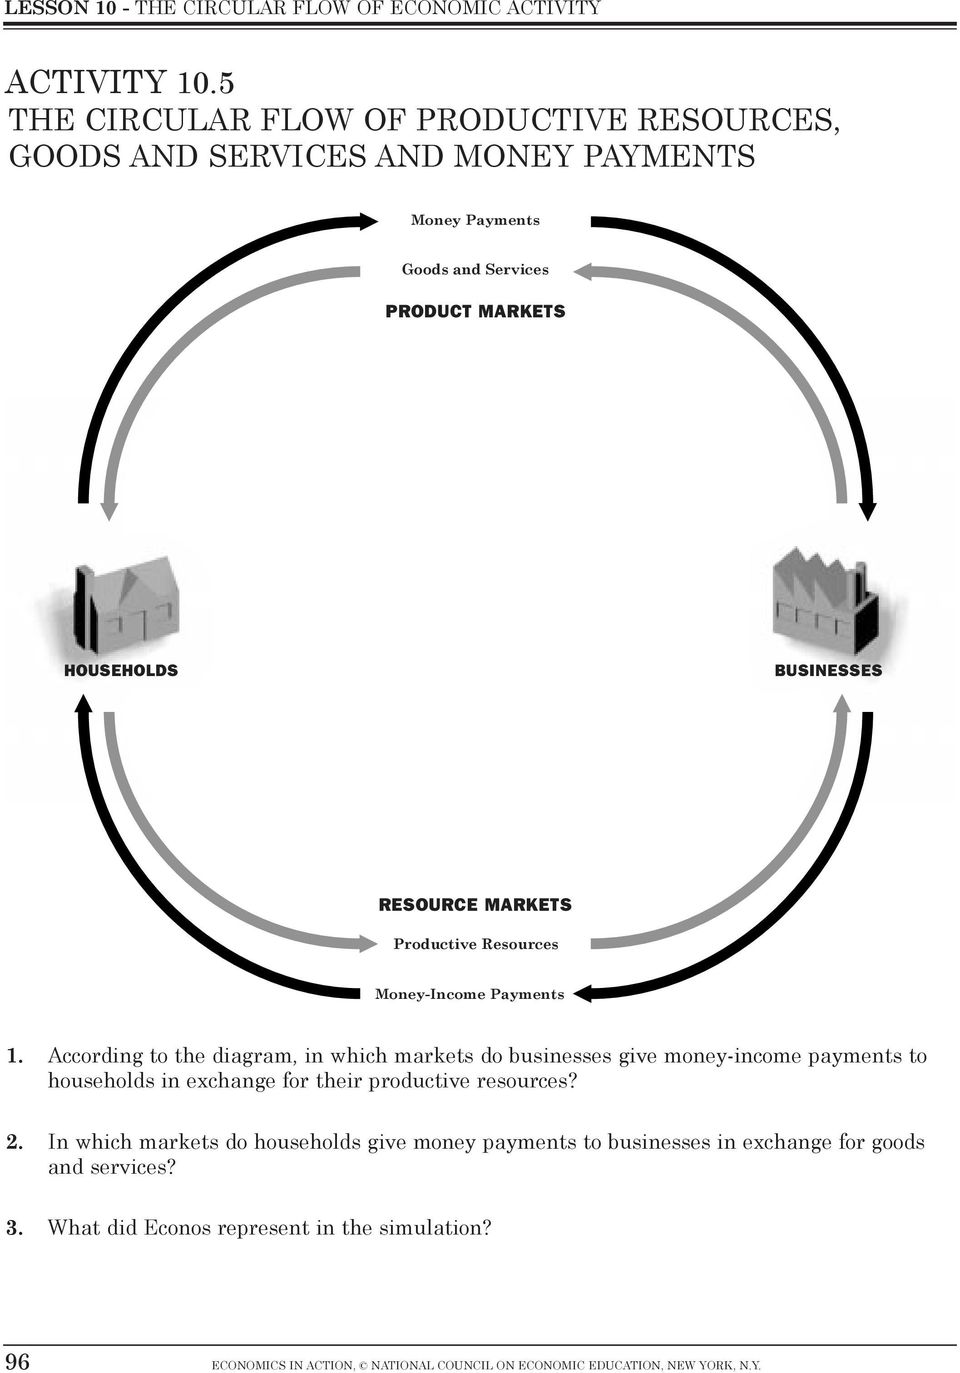 Lesson 10 the circular flow of economic activity pdf markets productive resources income 13 the circular flow of economic nvjuhfo Images